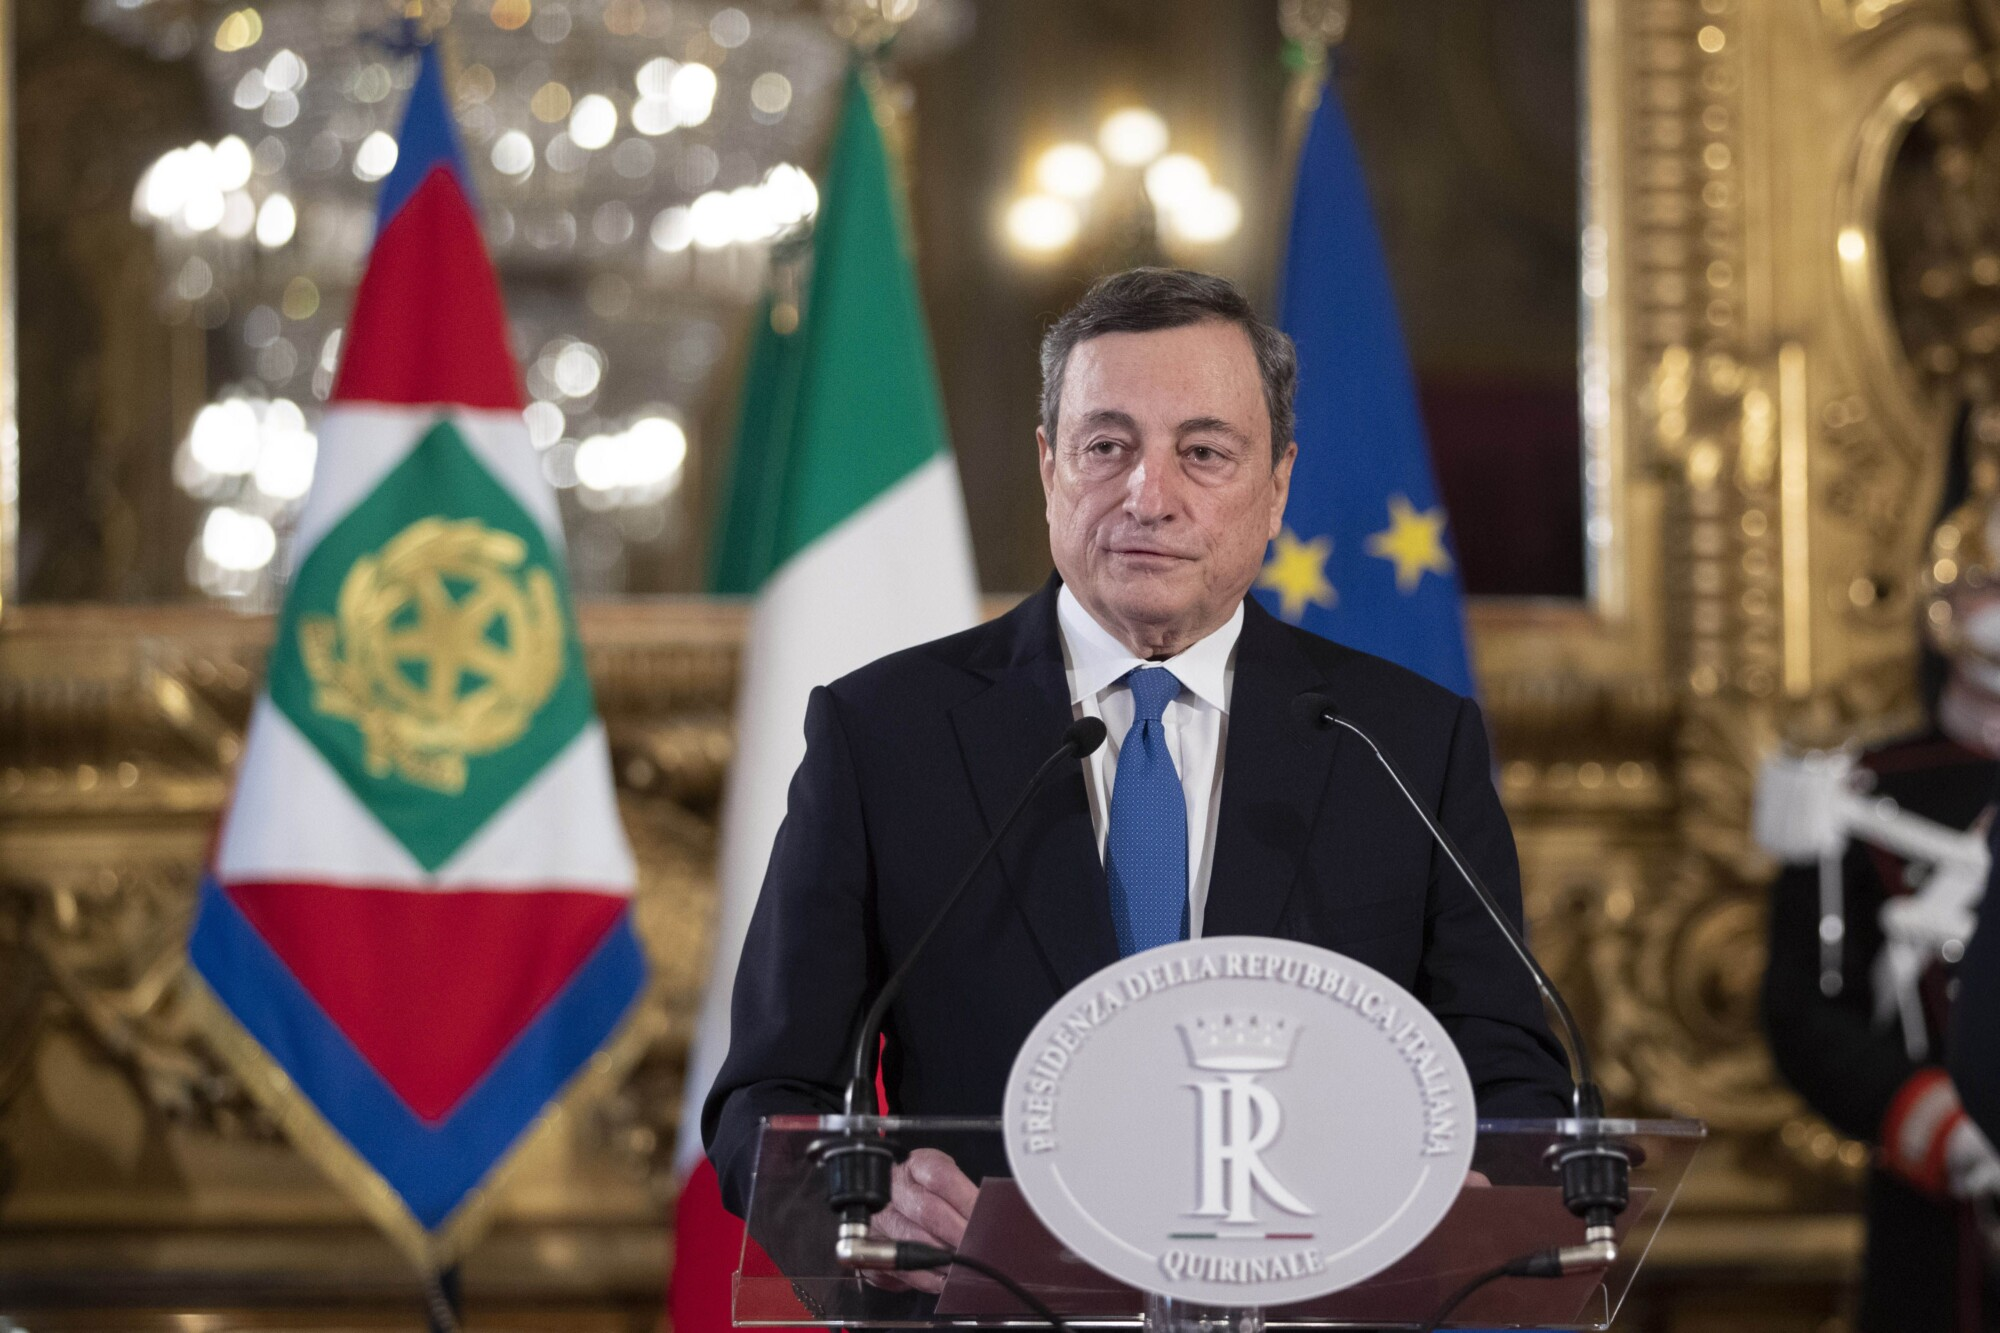 Italy's Draghi Wins Support of 2 Rival Parties for New Government